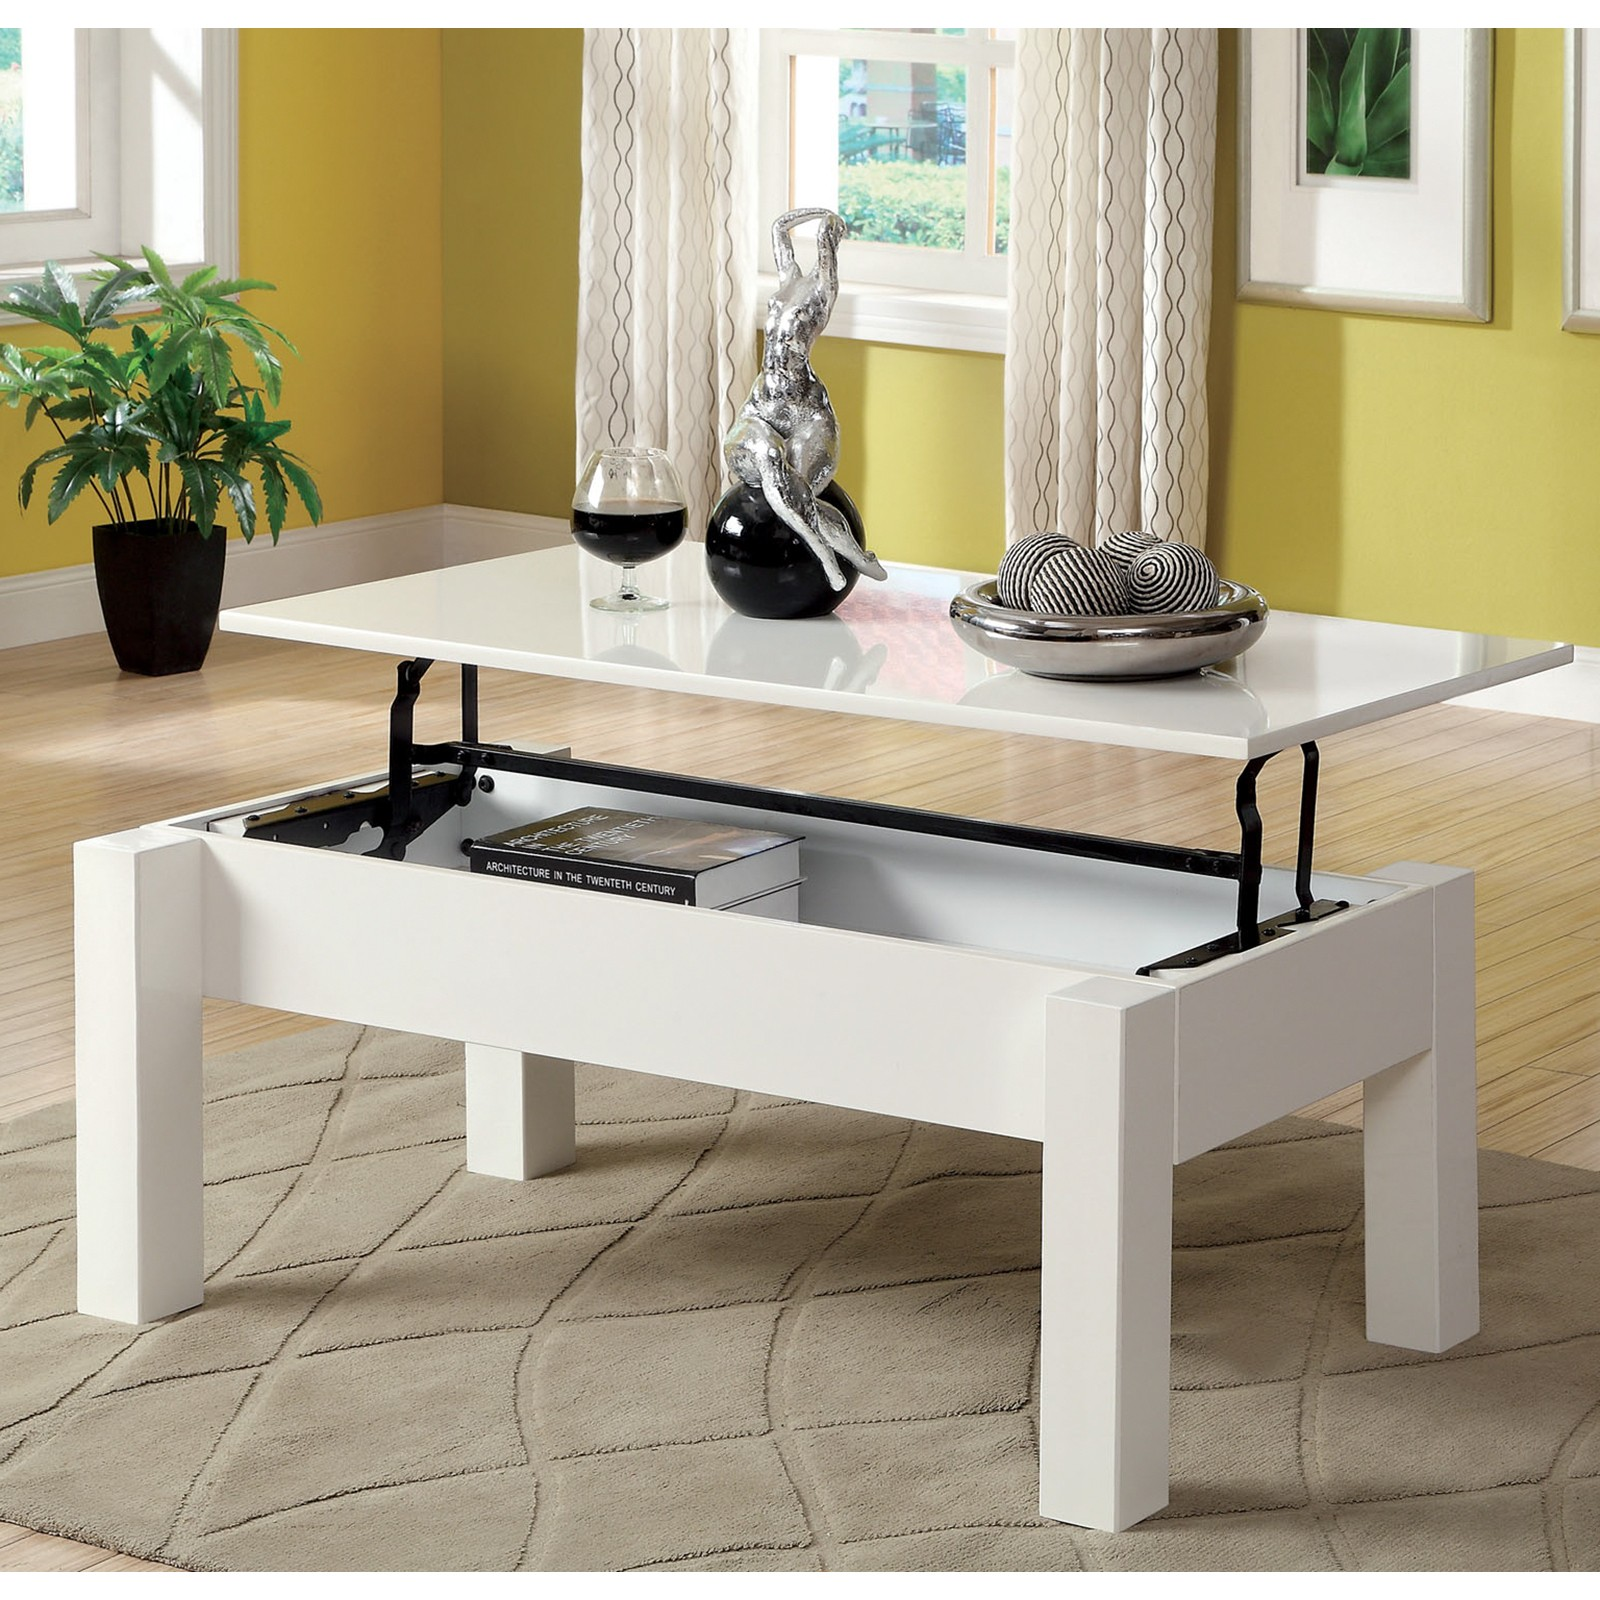 Furniture of America Luiza Contemporary Coffee Table with Lift-Top Storage White & White Top Coffee Table - Foter